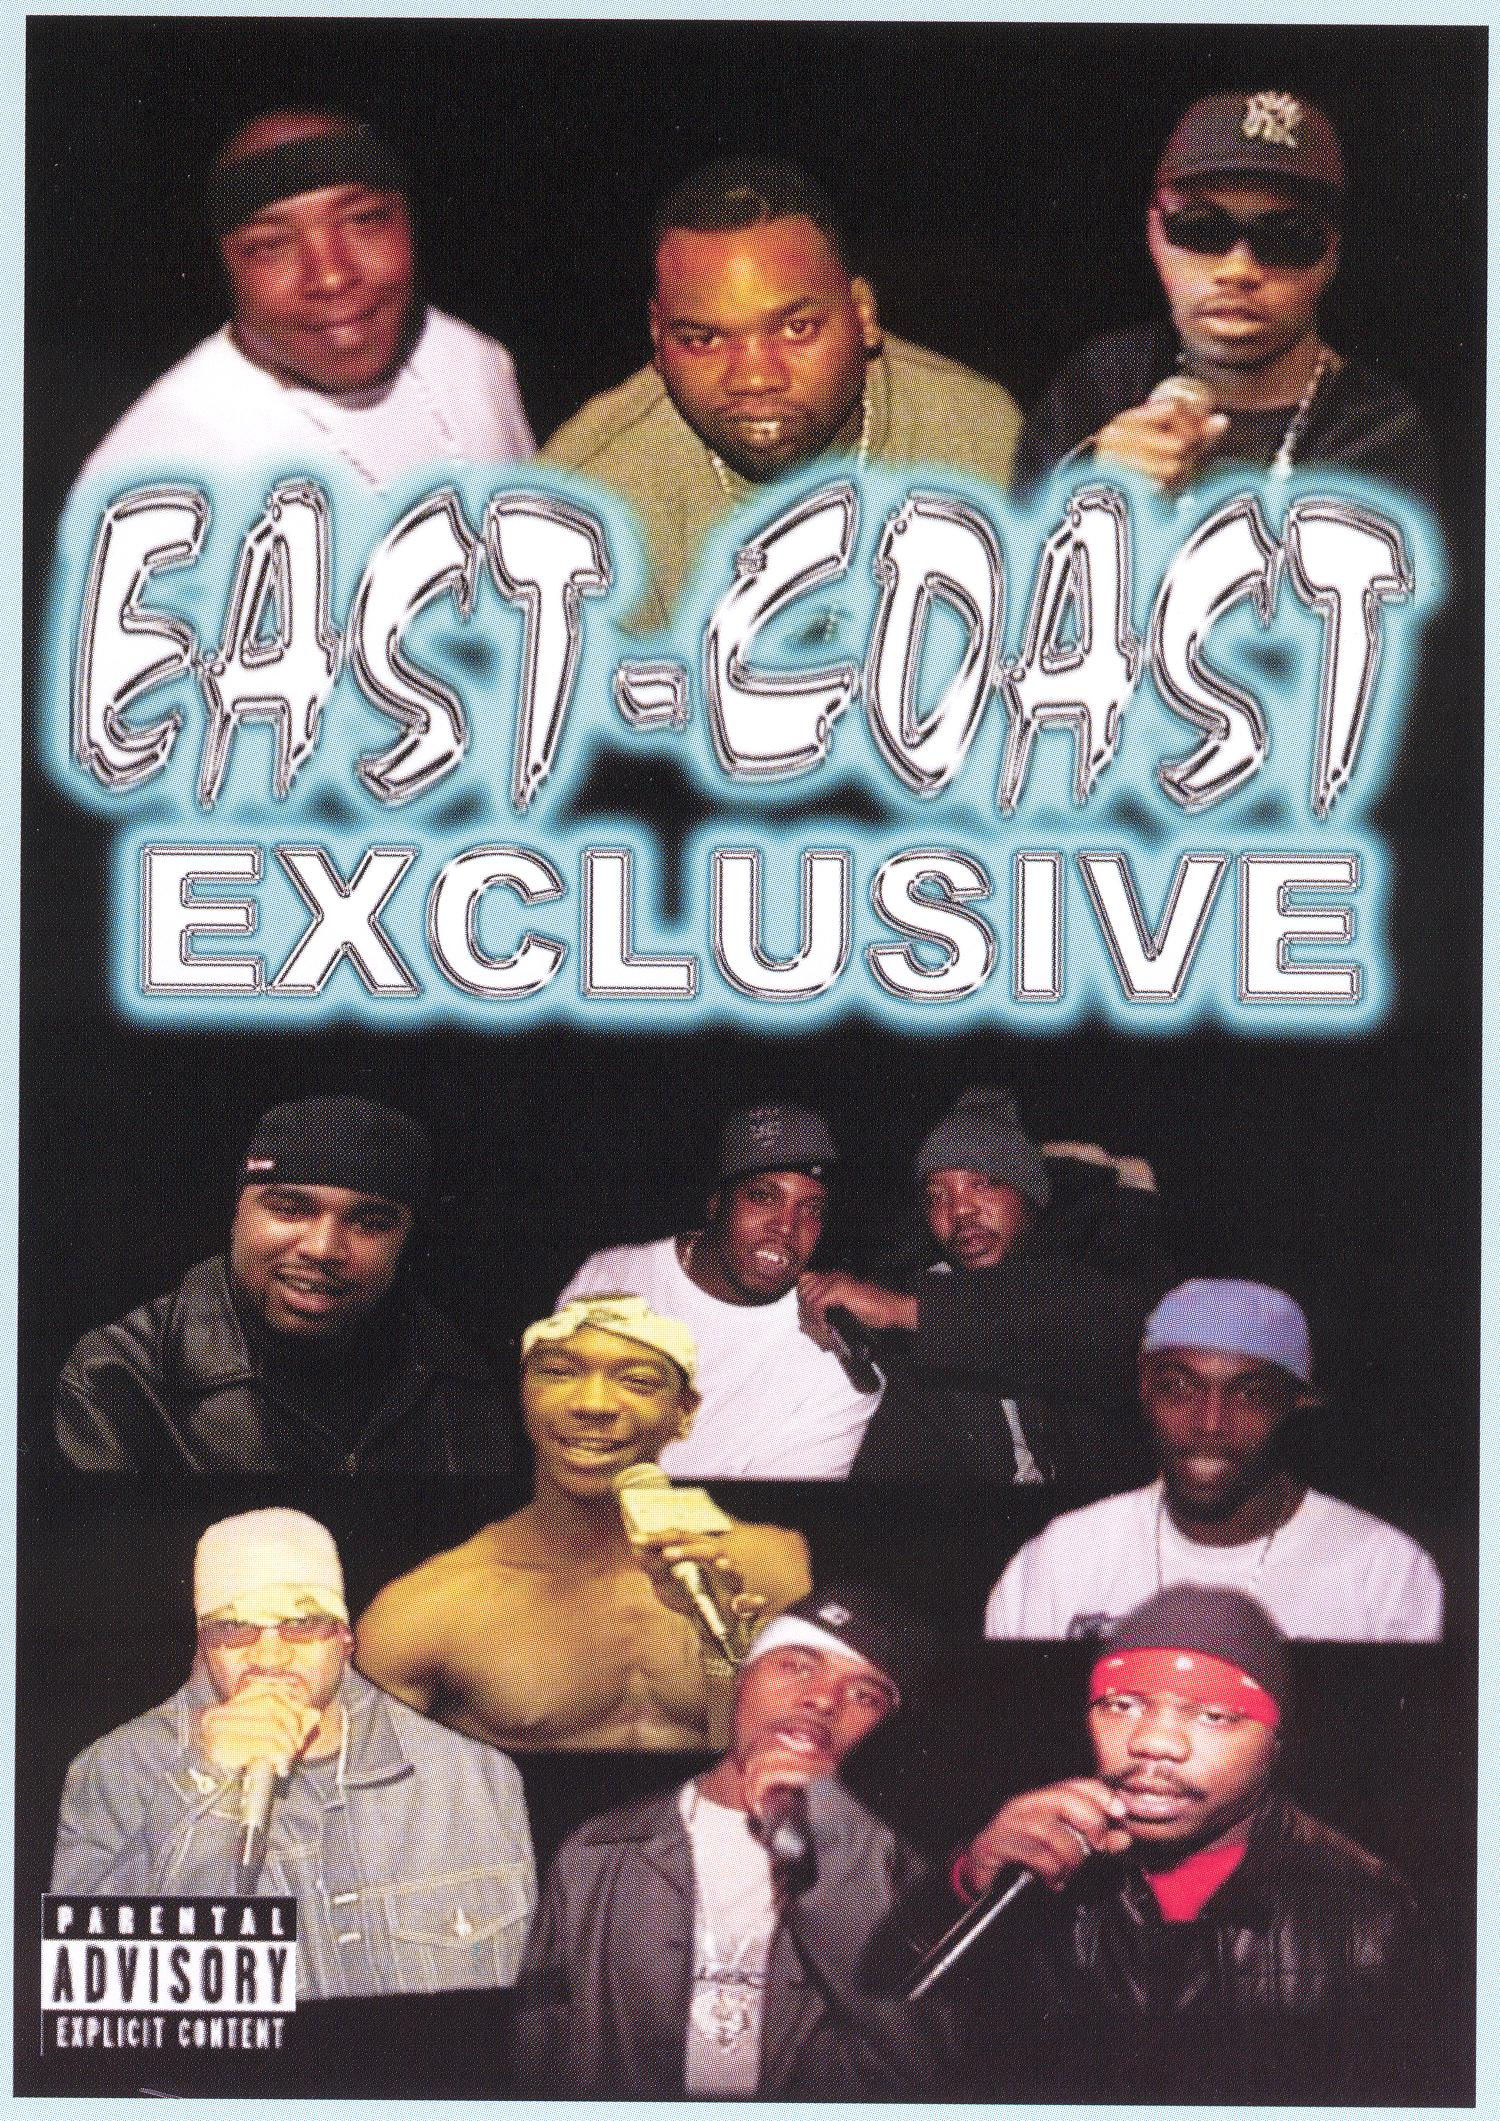 East Coast Exclusive